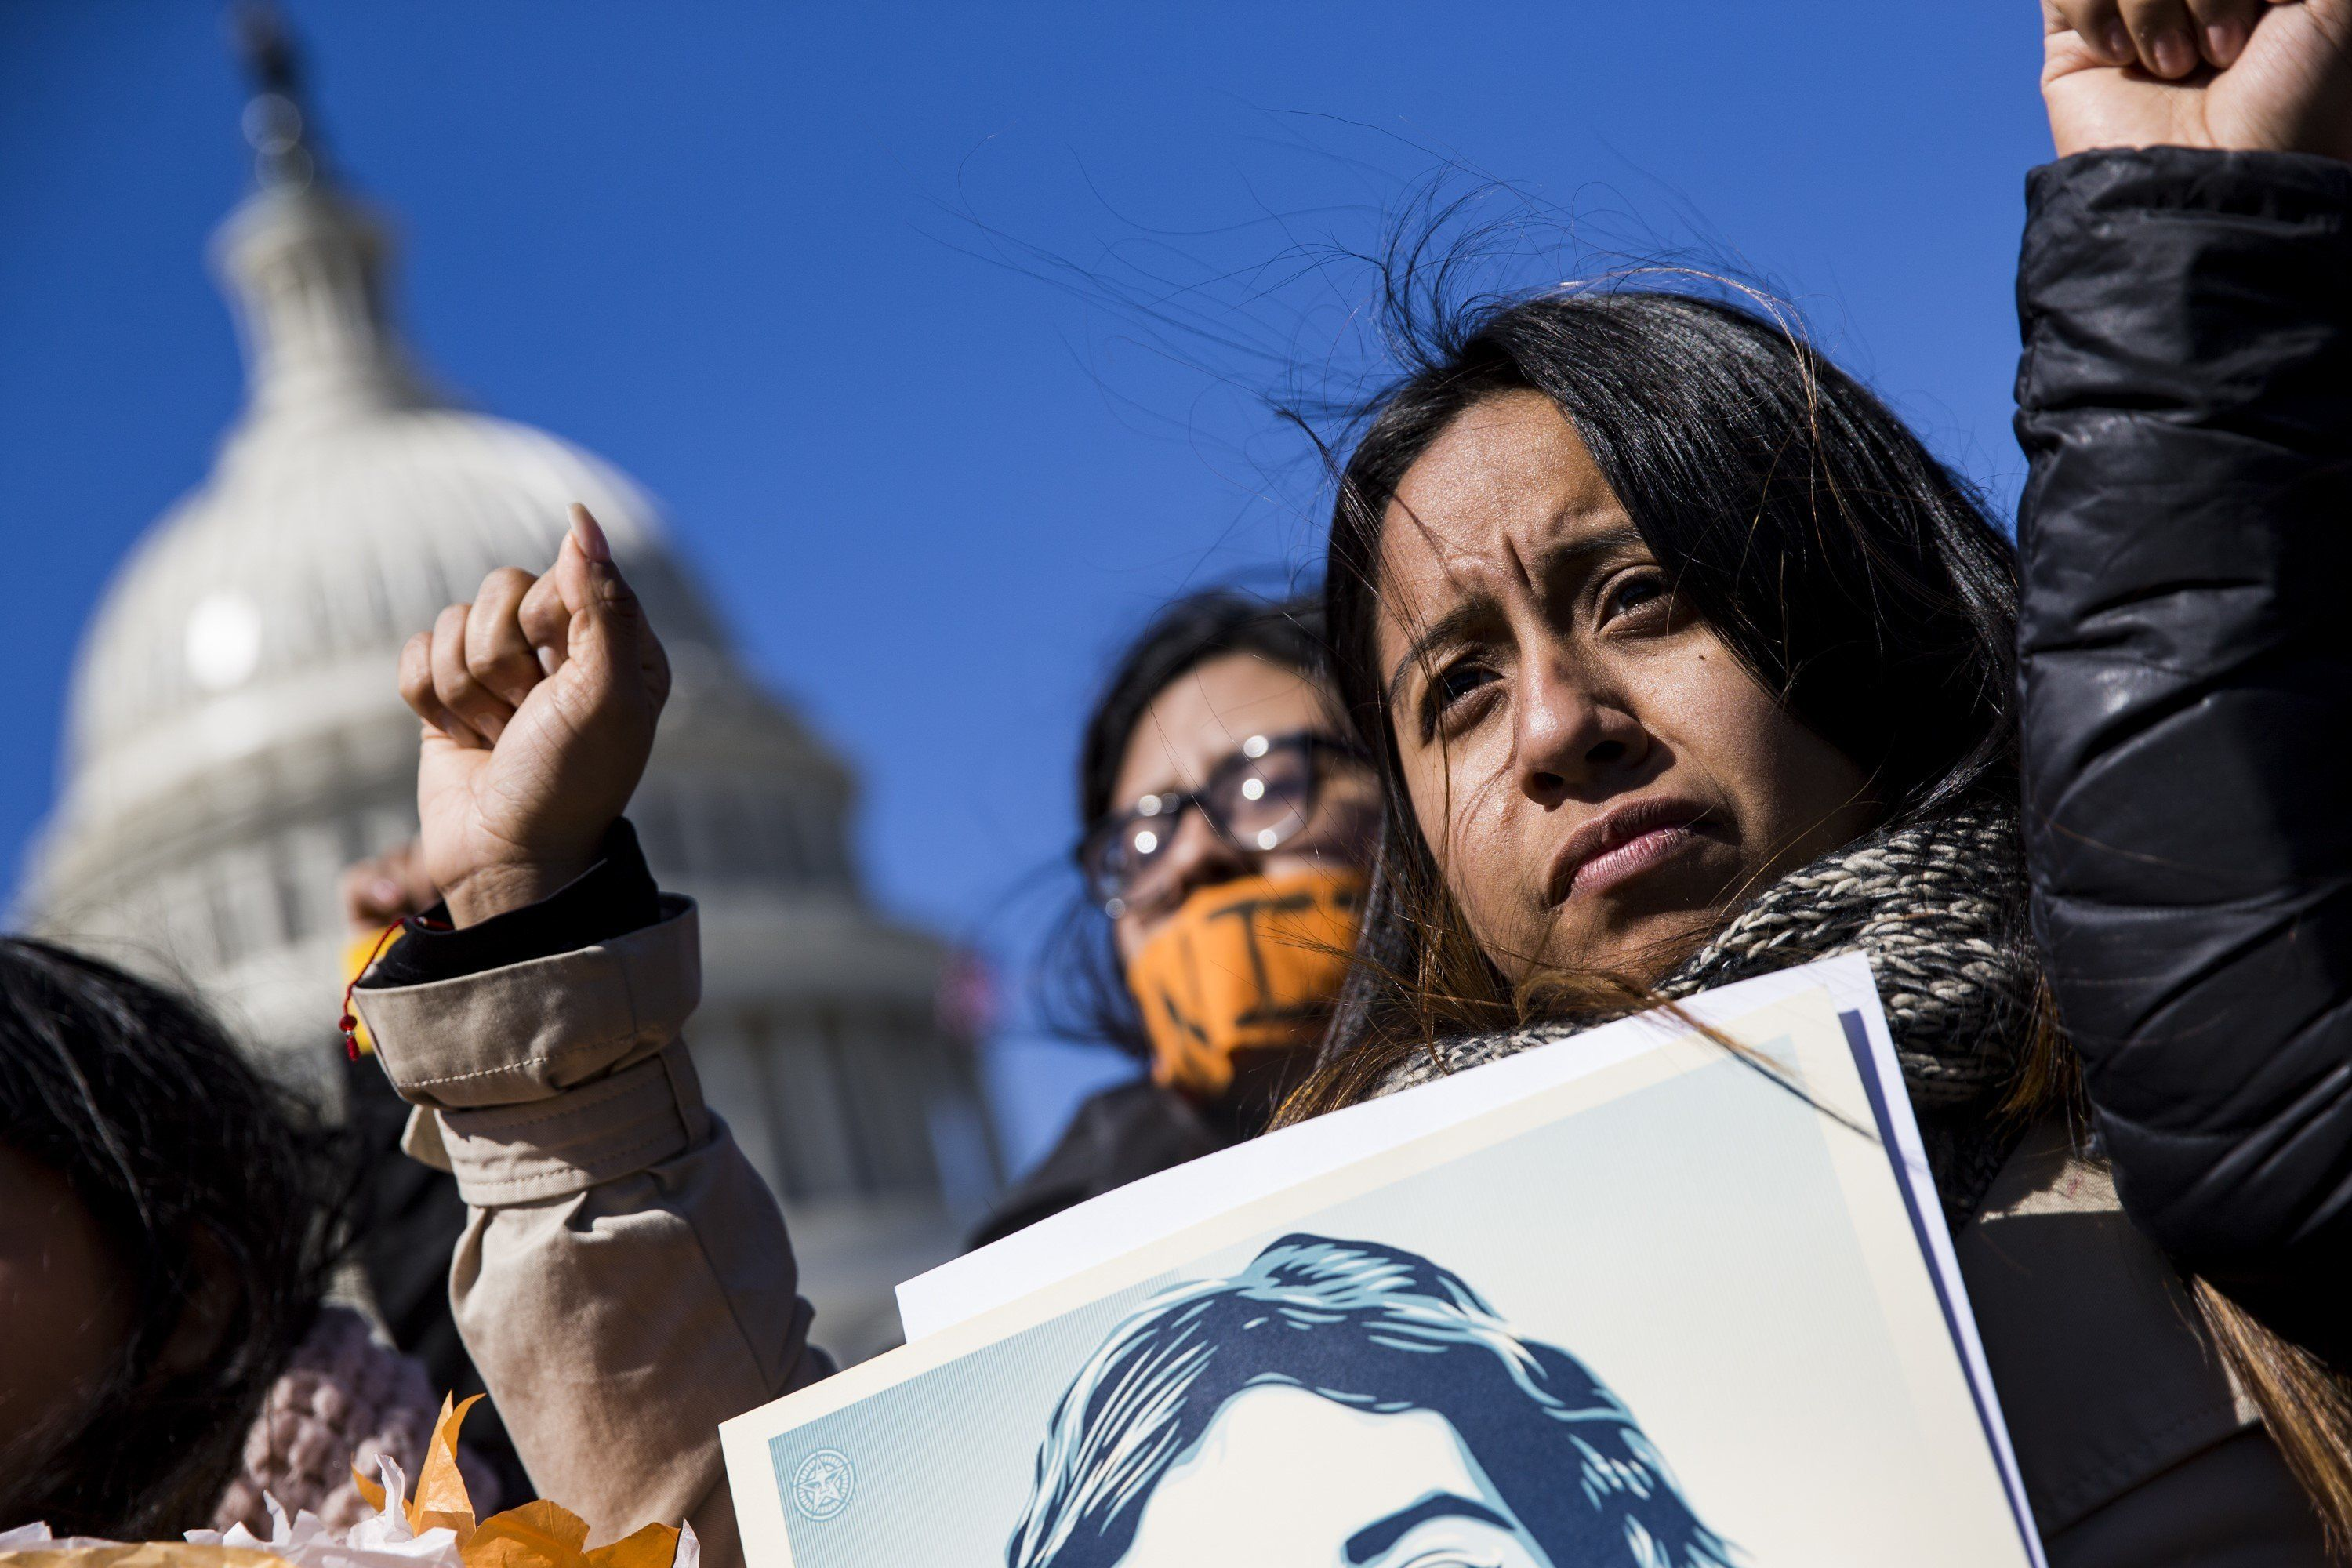 WASHINGTON, USA - MARCH 5: Demonstrators raise their fists in protest of President Trump's attempts to end the Deferred Action for Childhood Arrivals (DACA), an executive action made by President Obama that protected minors known as Dreamers who entered the country illegally from deportation, outside of the U.S. Capitol in Washington, USA on March 5, 2018. (Photo by Samuel Corum/Anadolu Agency/Getty Images)